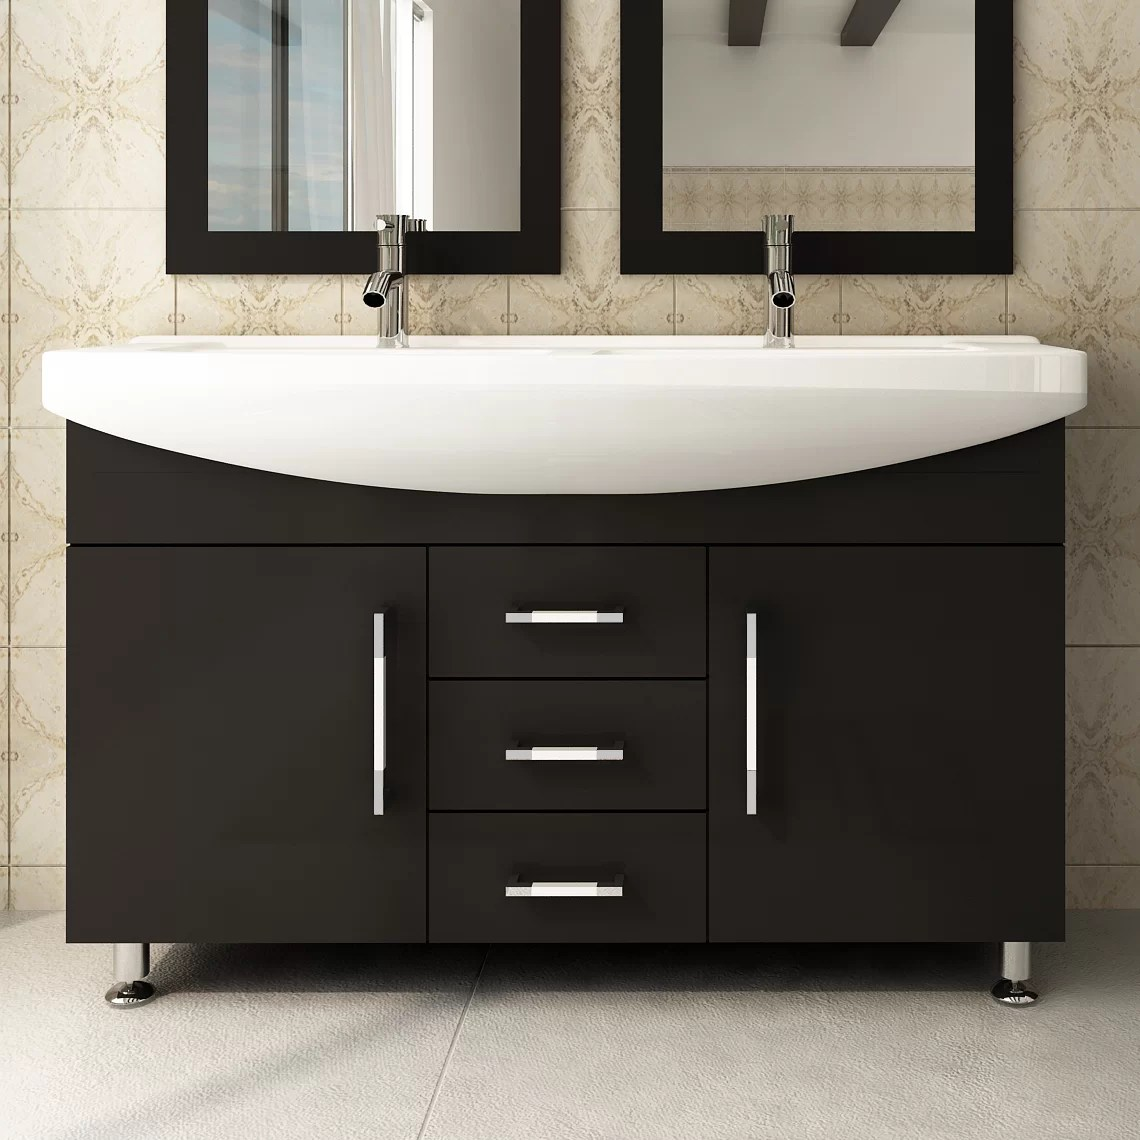 Jwh Living Celine 48 Double Bathroom Vanity Reviews